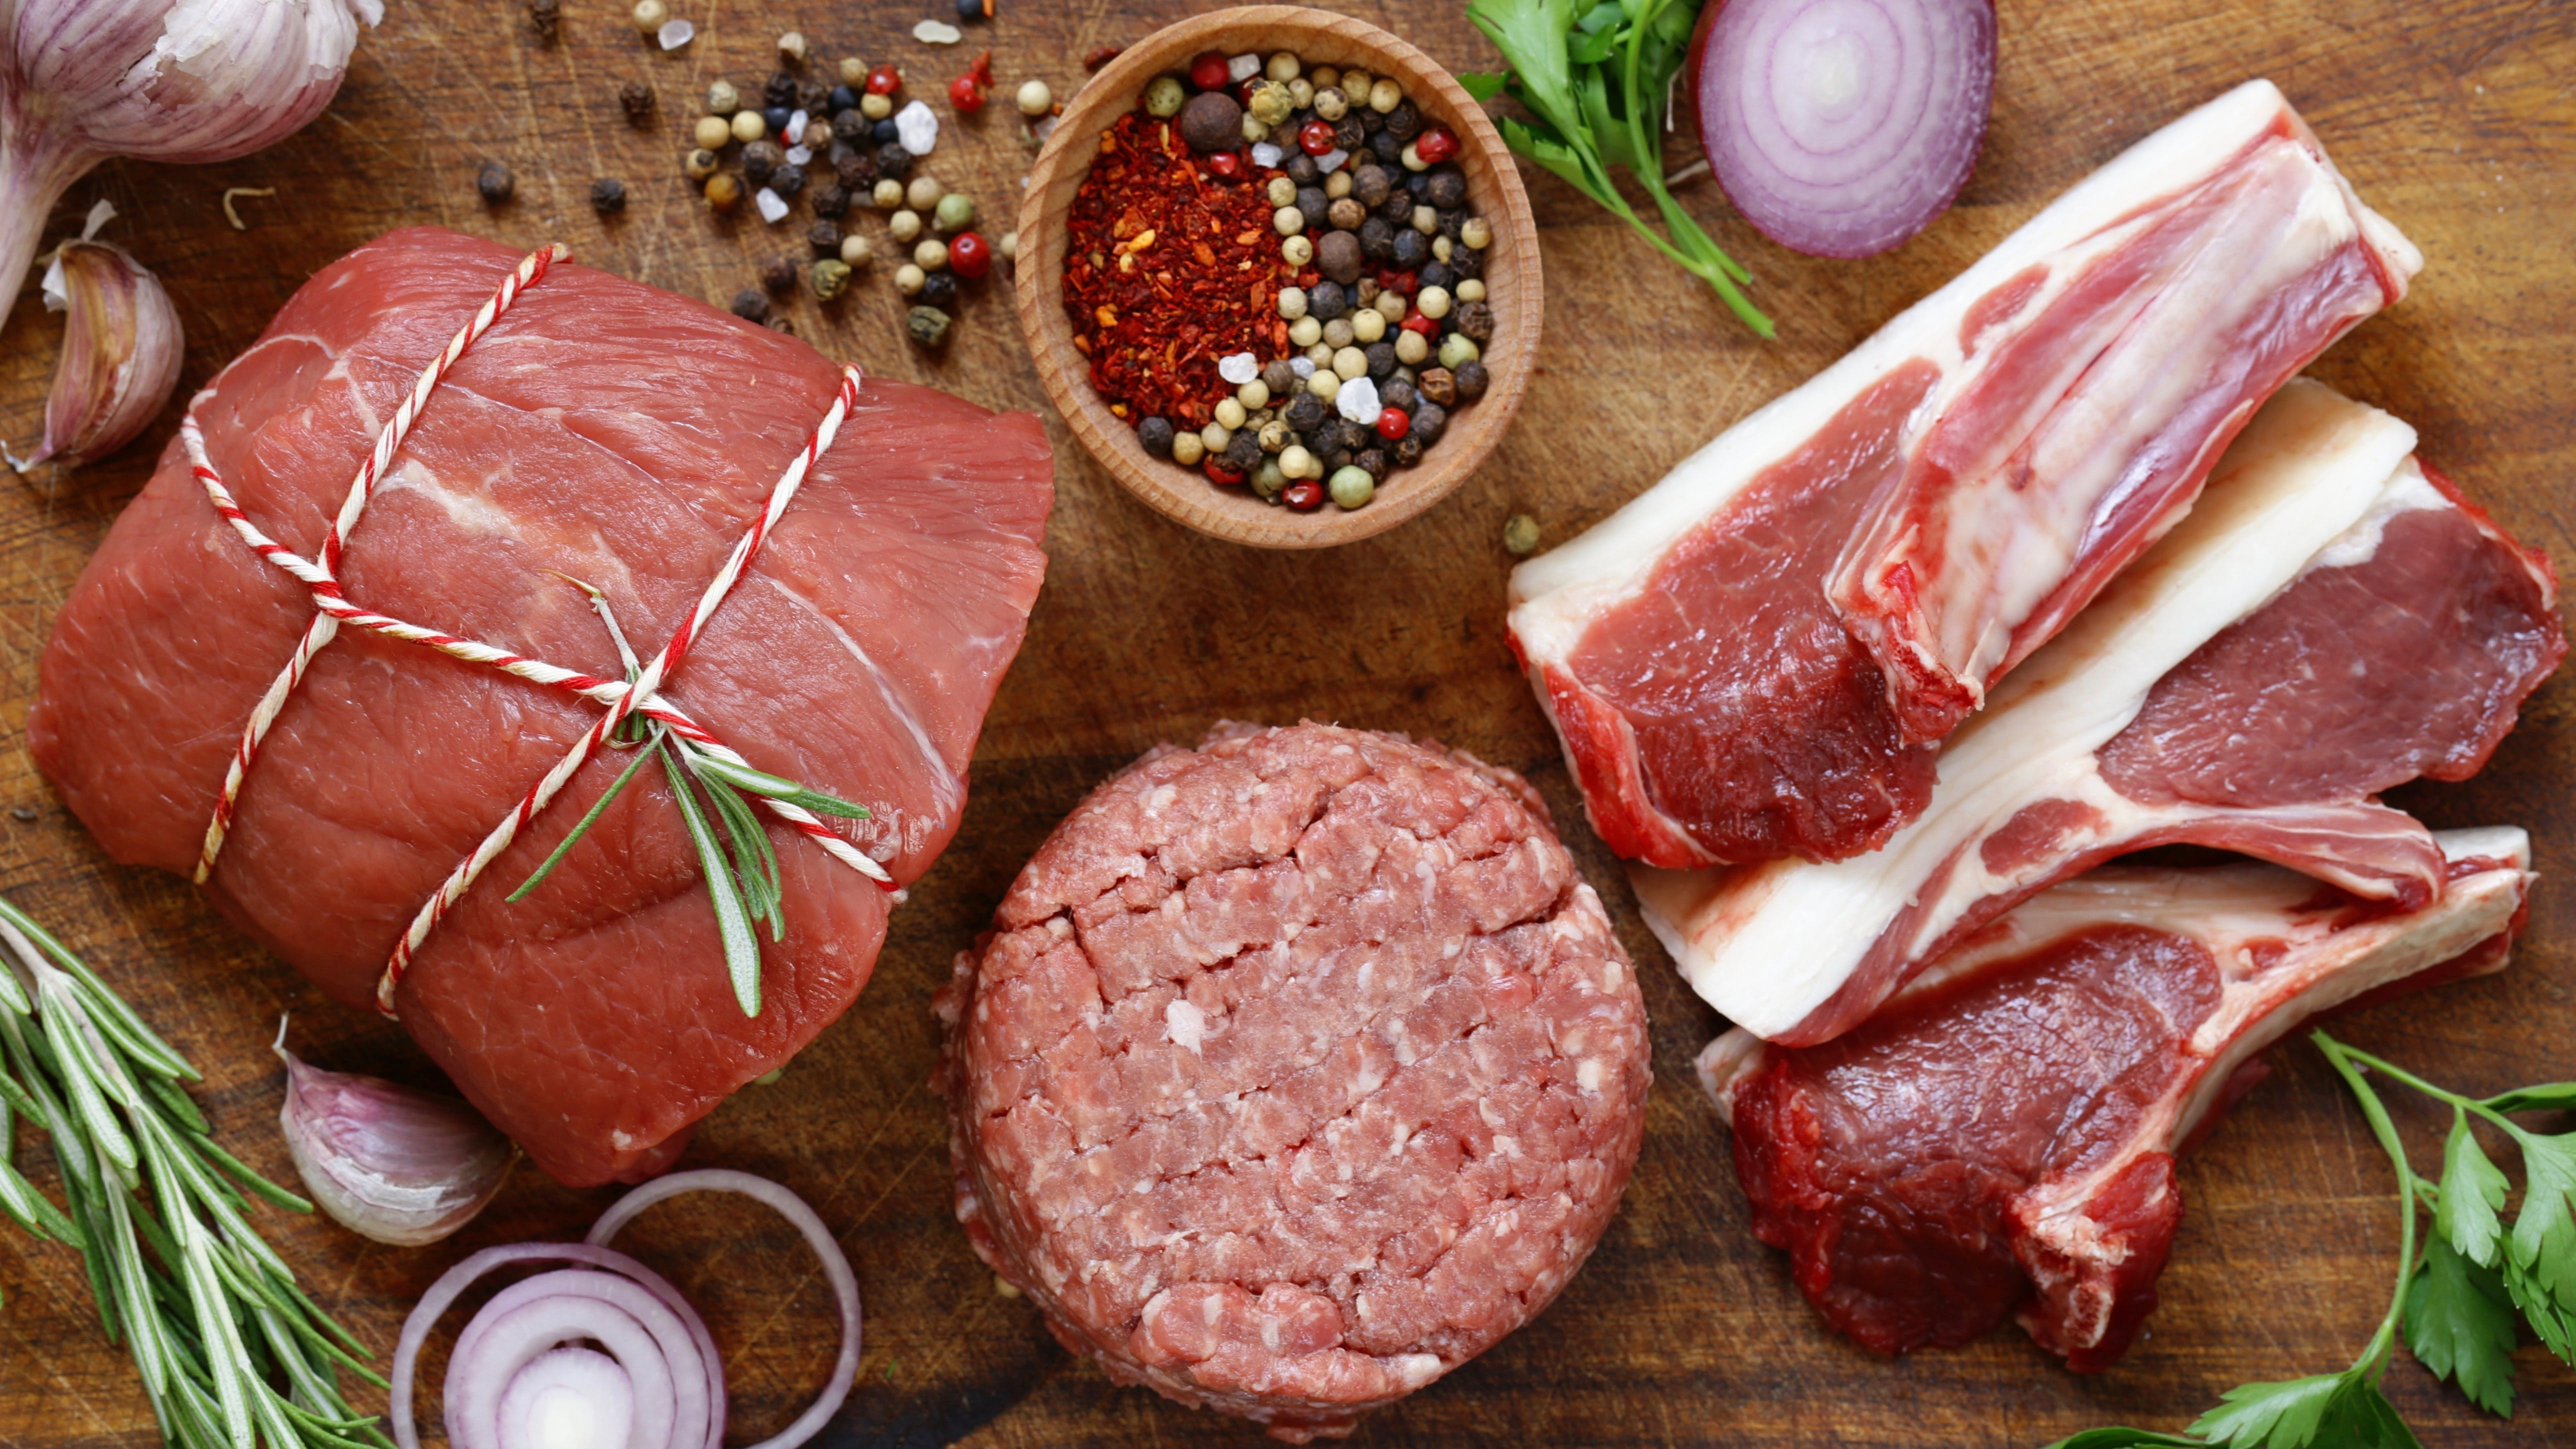 Organic raw meat on a wooden table